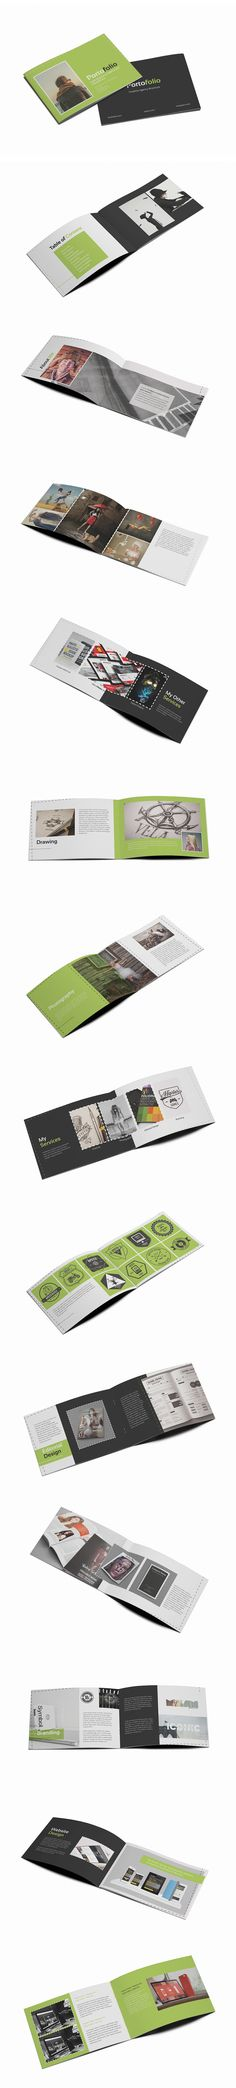 Facebook Marketing and Advertising Proposal Facebook marketing - photography proposal template